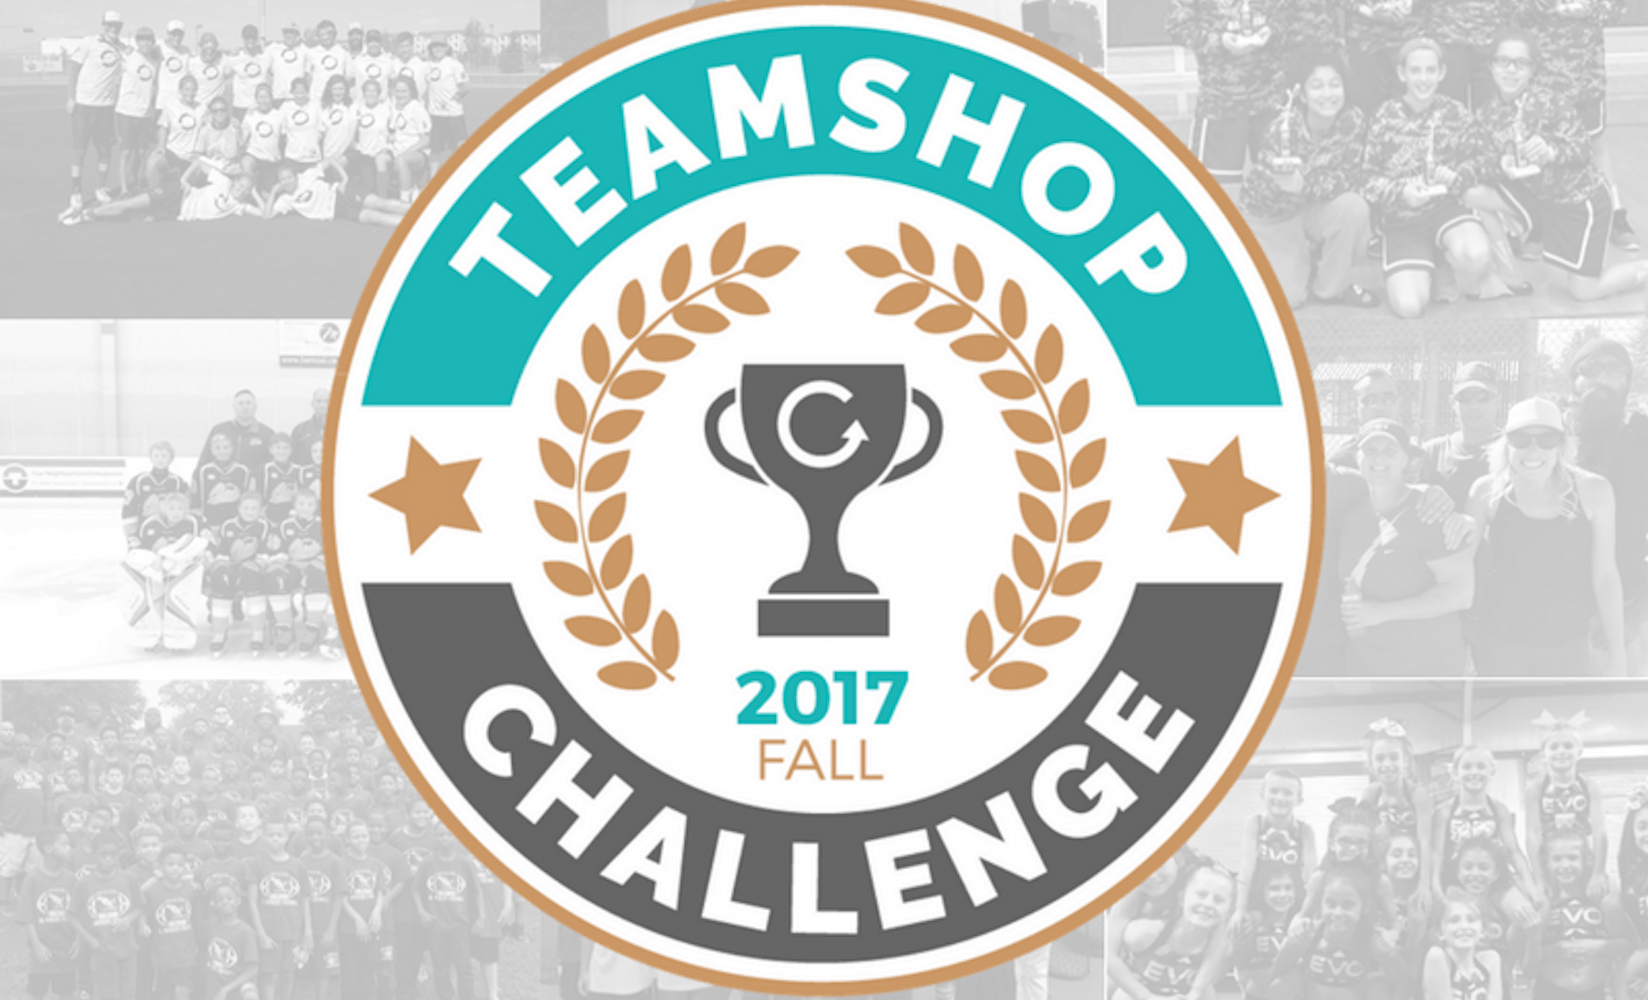 Teamshop 2017 winners